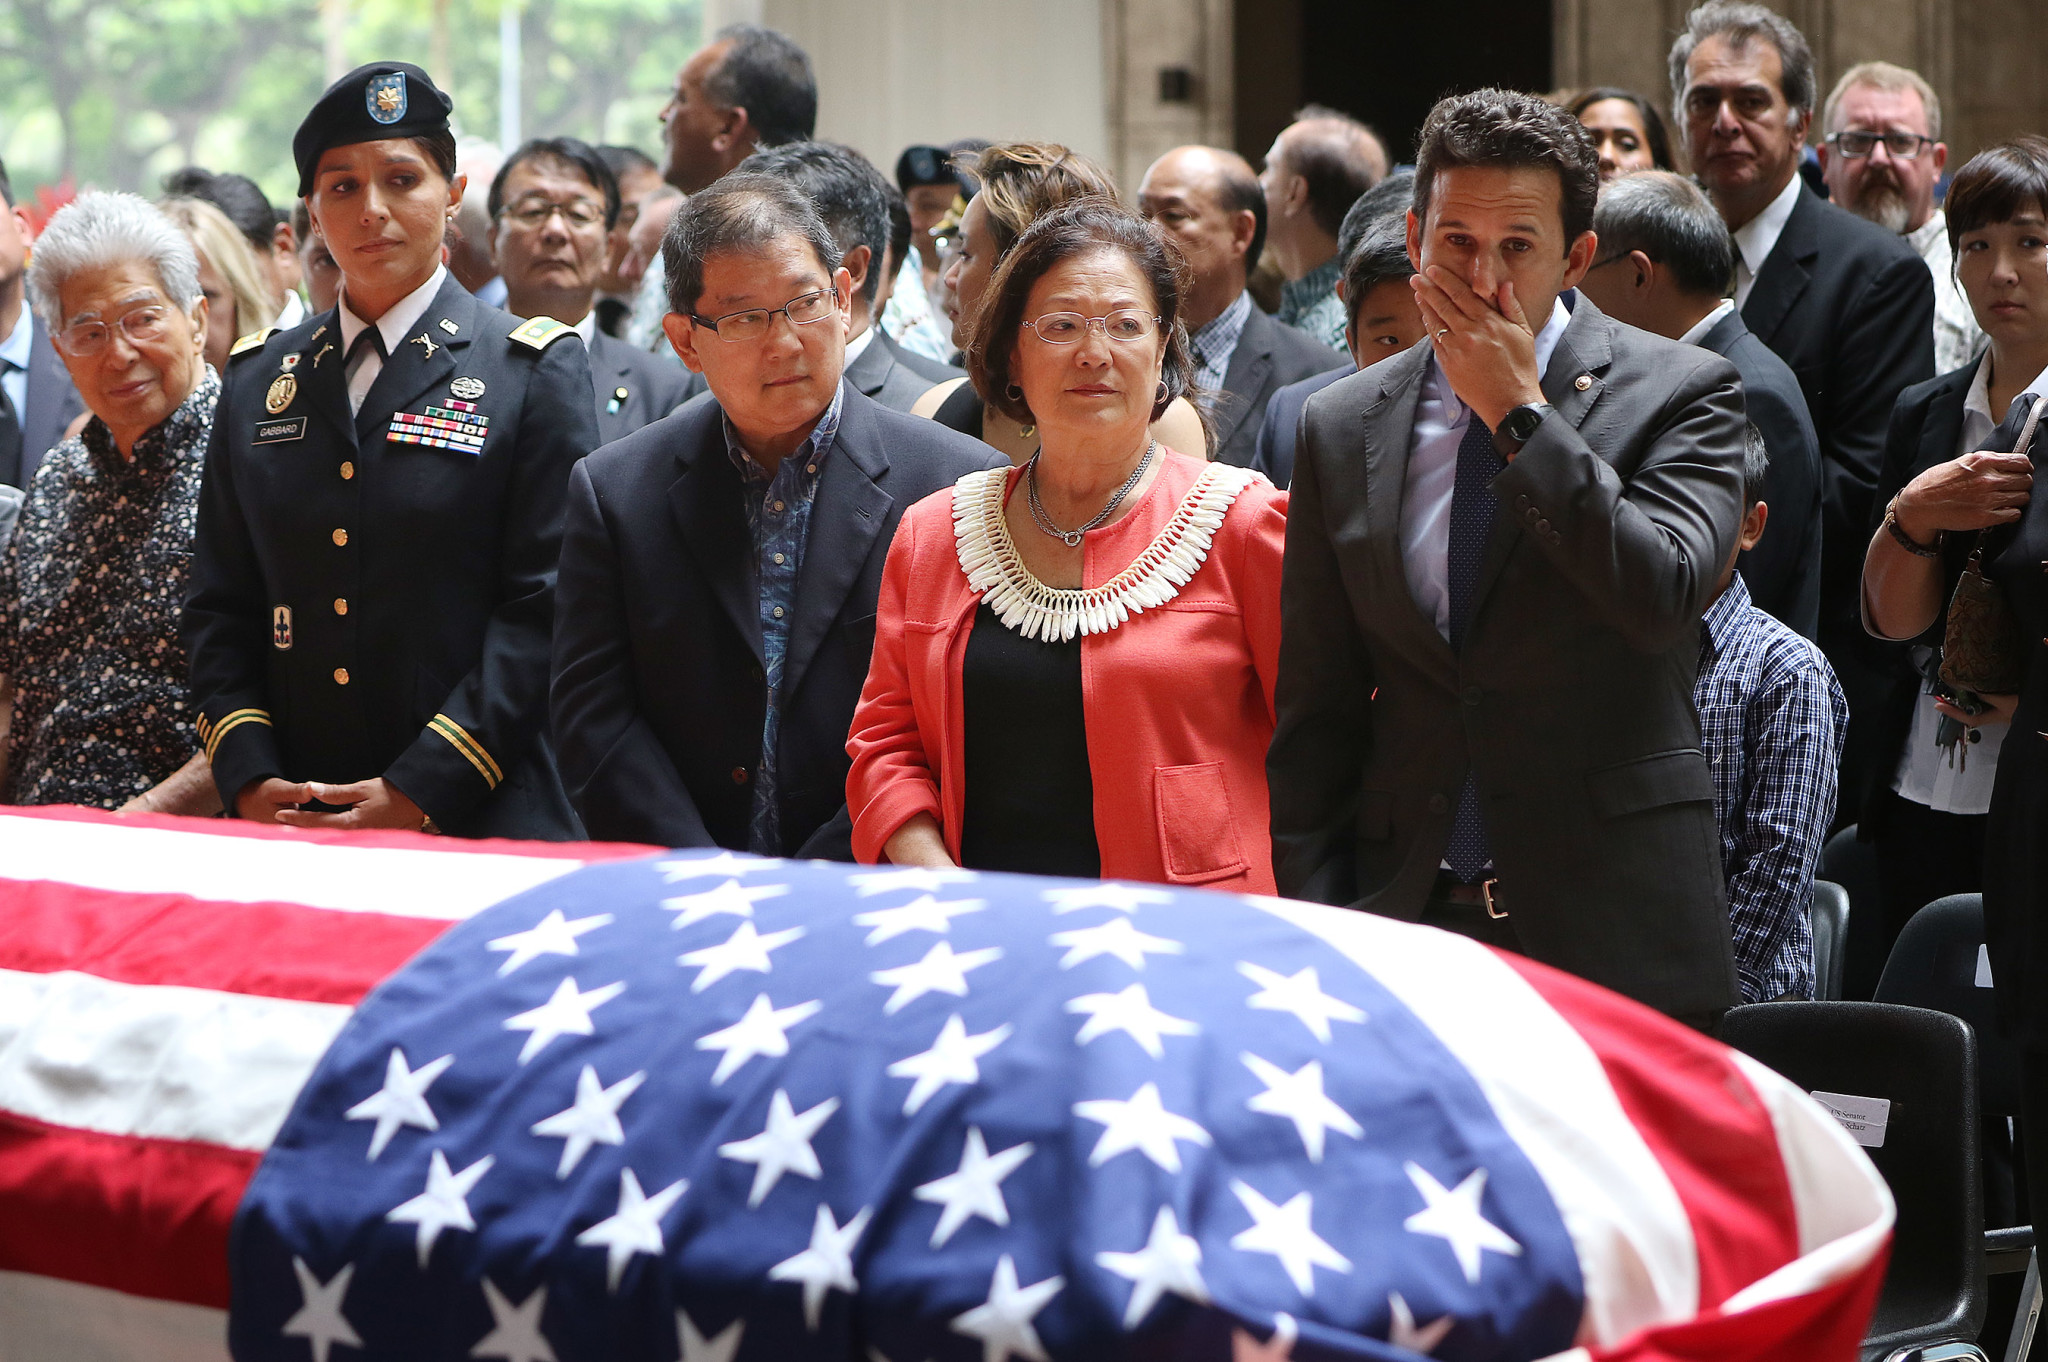 <p>Current and former federal leaders gathered for the emotional service. From left, former Sen. Daniel Akaka, Rep. Tulsi Gabbard (in her Army dress uniform), Leighton Oshima (husband of Sen. Mazie Hirono), Hirono and Sen. Brian Schatz.</p>